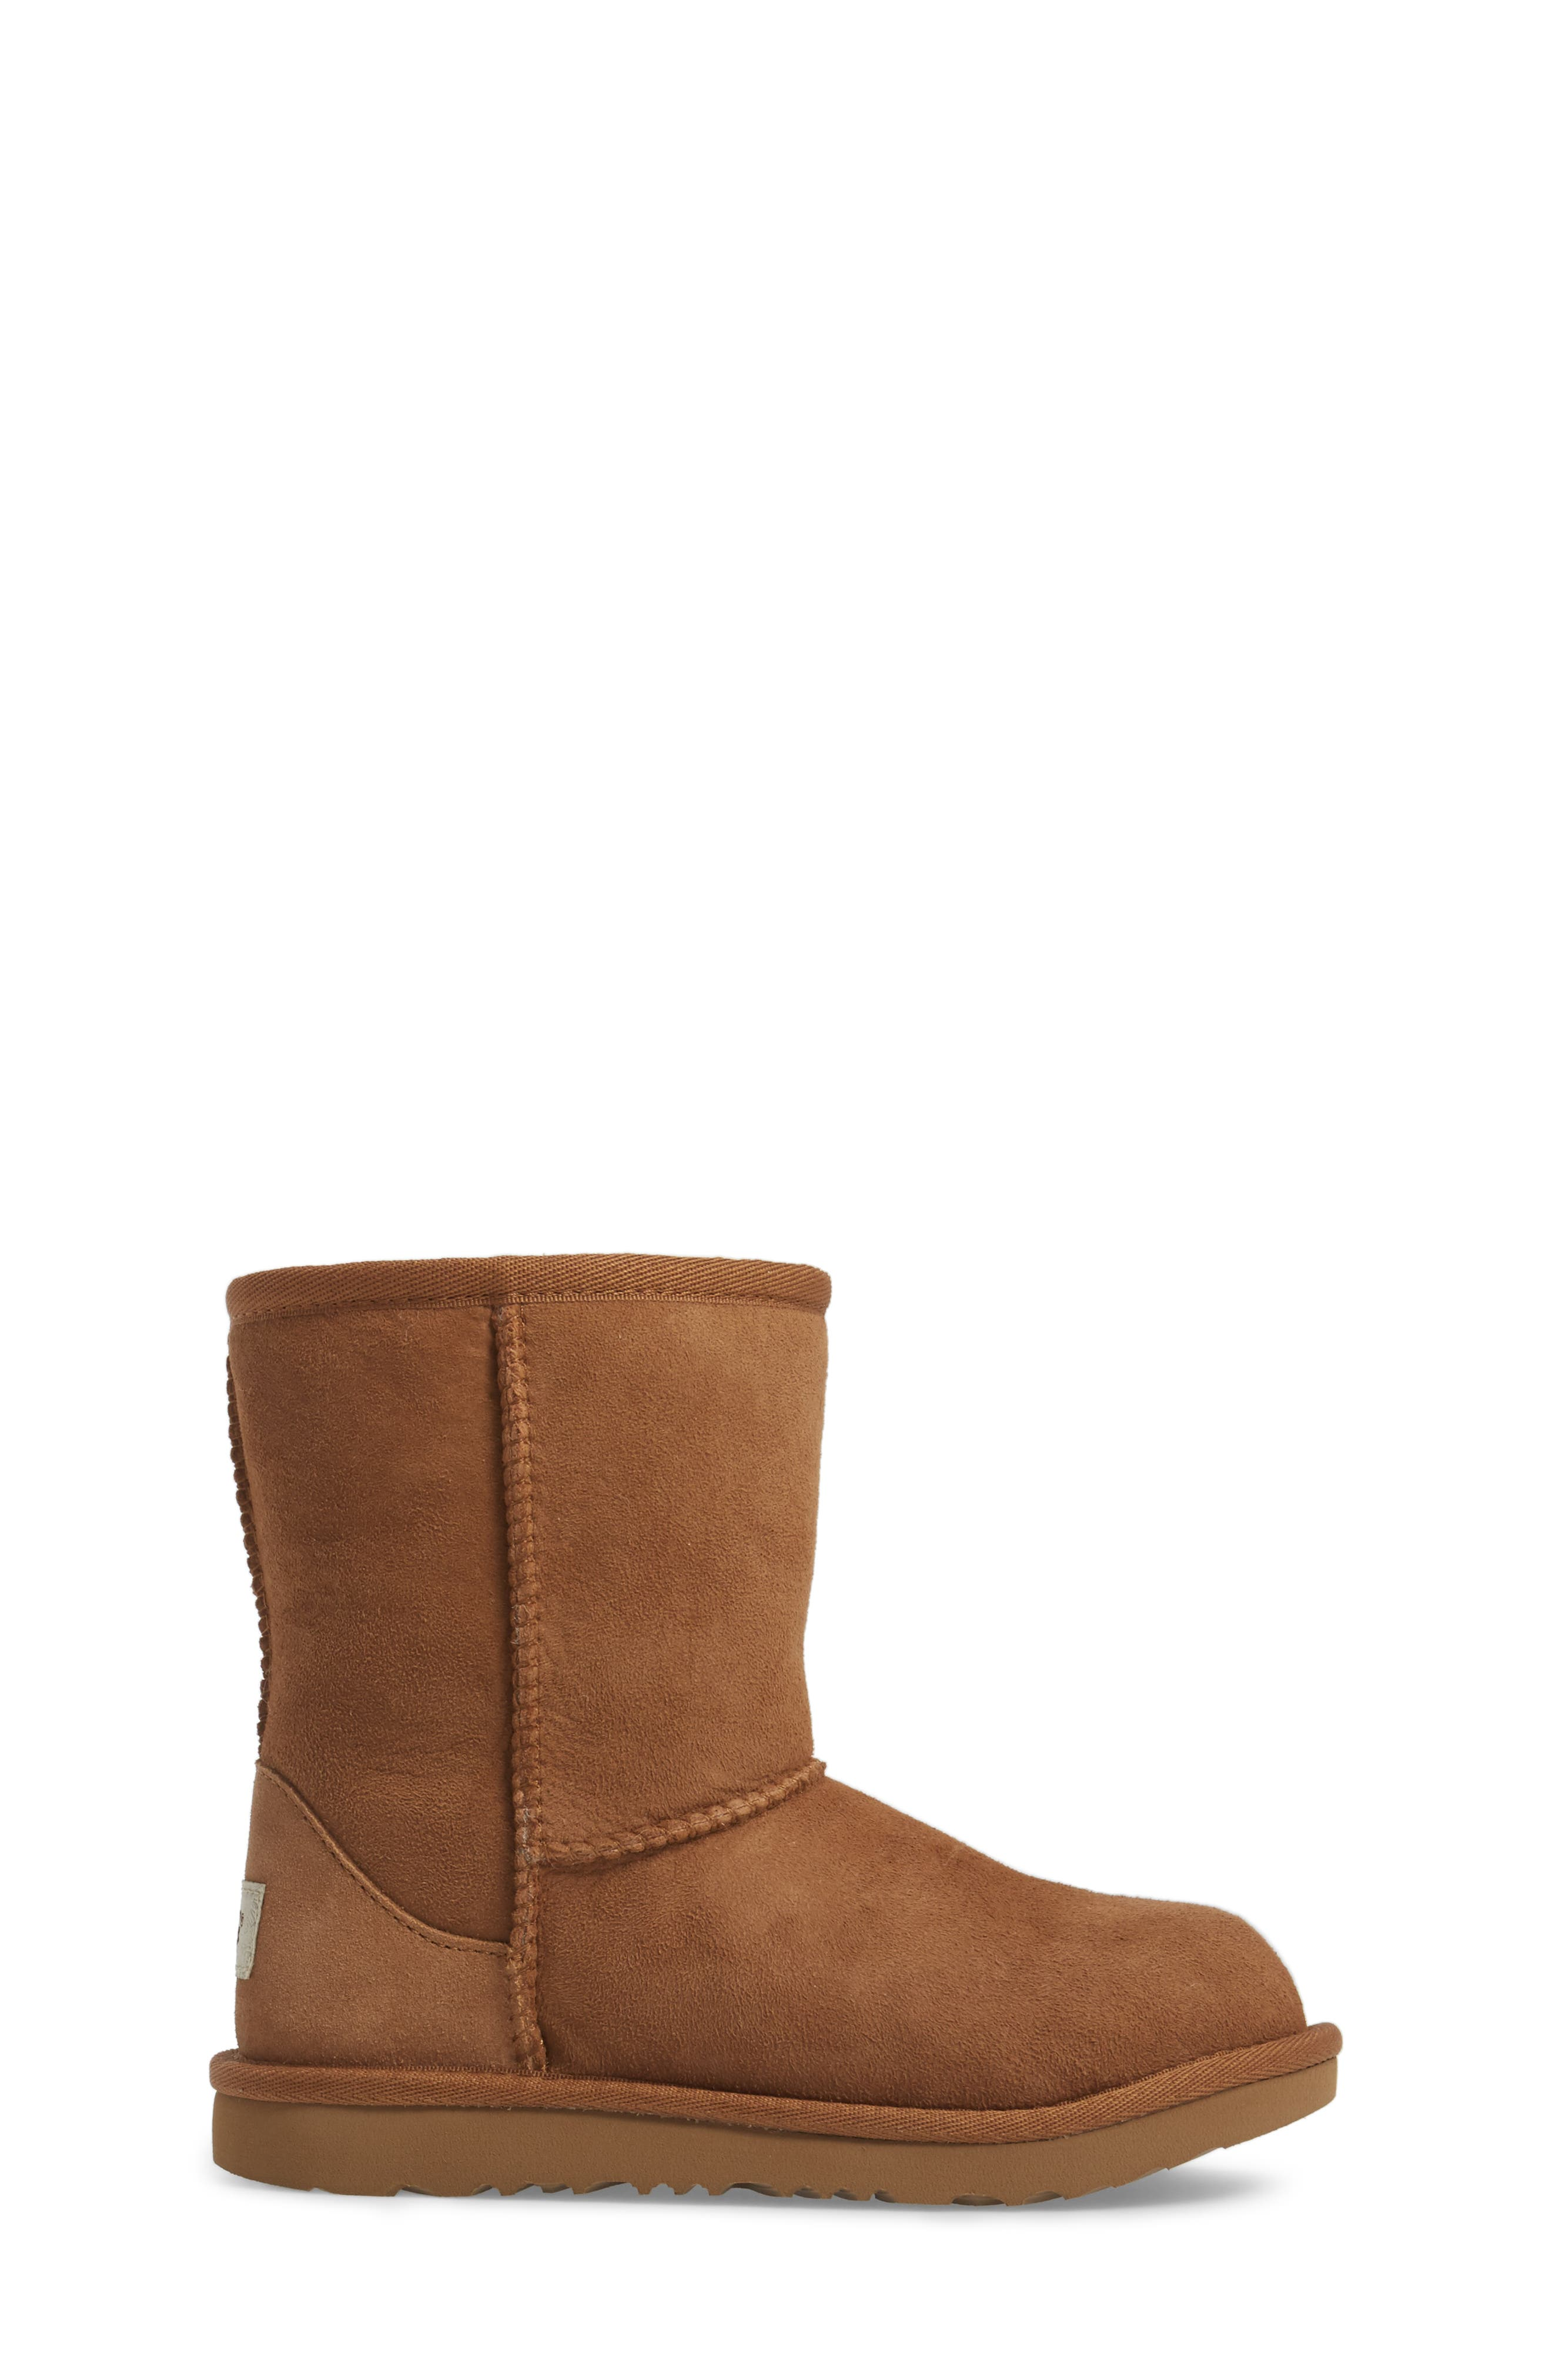 Classic II Water Resistant Genuine Shearling Boot,                             Alternate thumbnail 3, color,                             Chestnut Brown